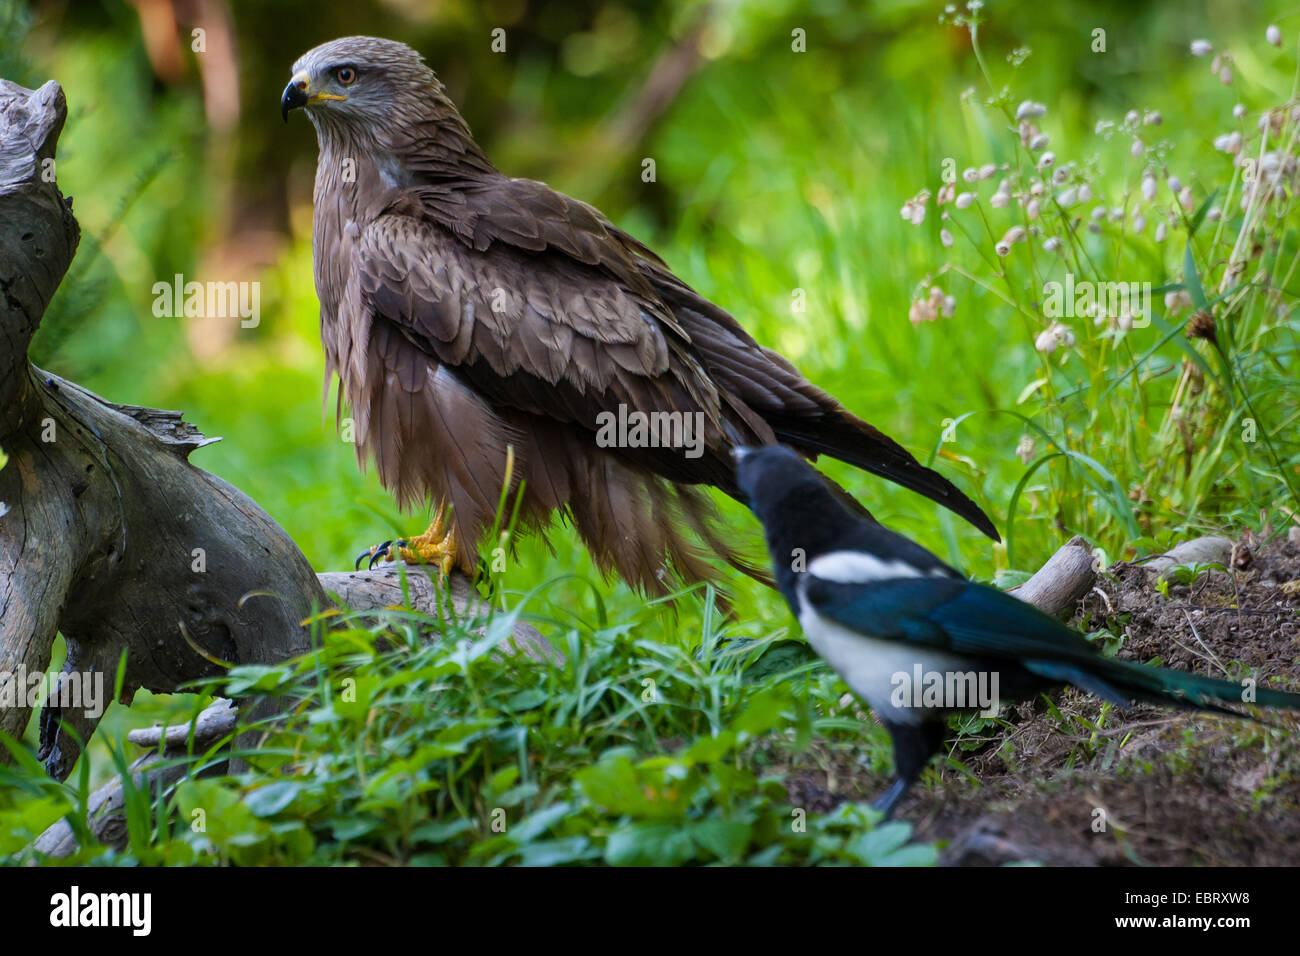 Black kite, Yellow-billed kite (Milvus migrans), sits on a root on the ground and is watched by a magpie, Switzerland, - Stock Image